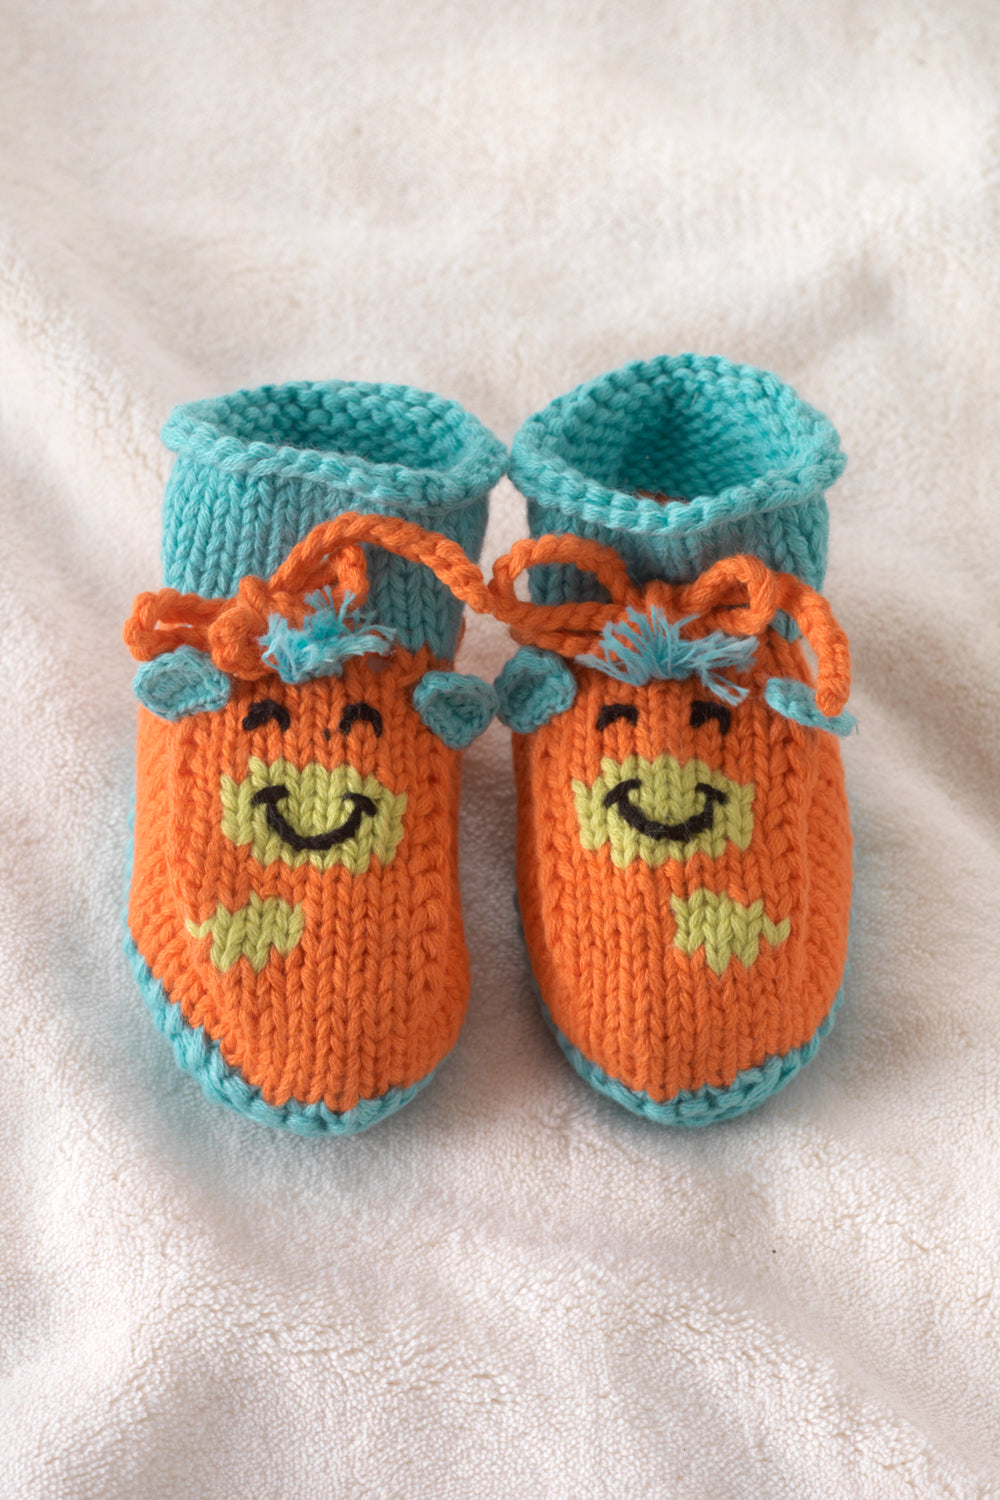 joobles-fair-trade-organic-baby-booties-jiffy-the-giraffe